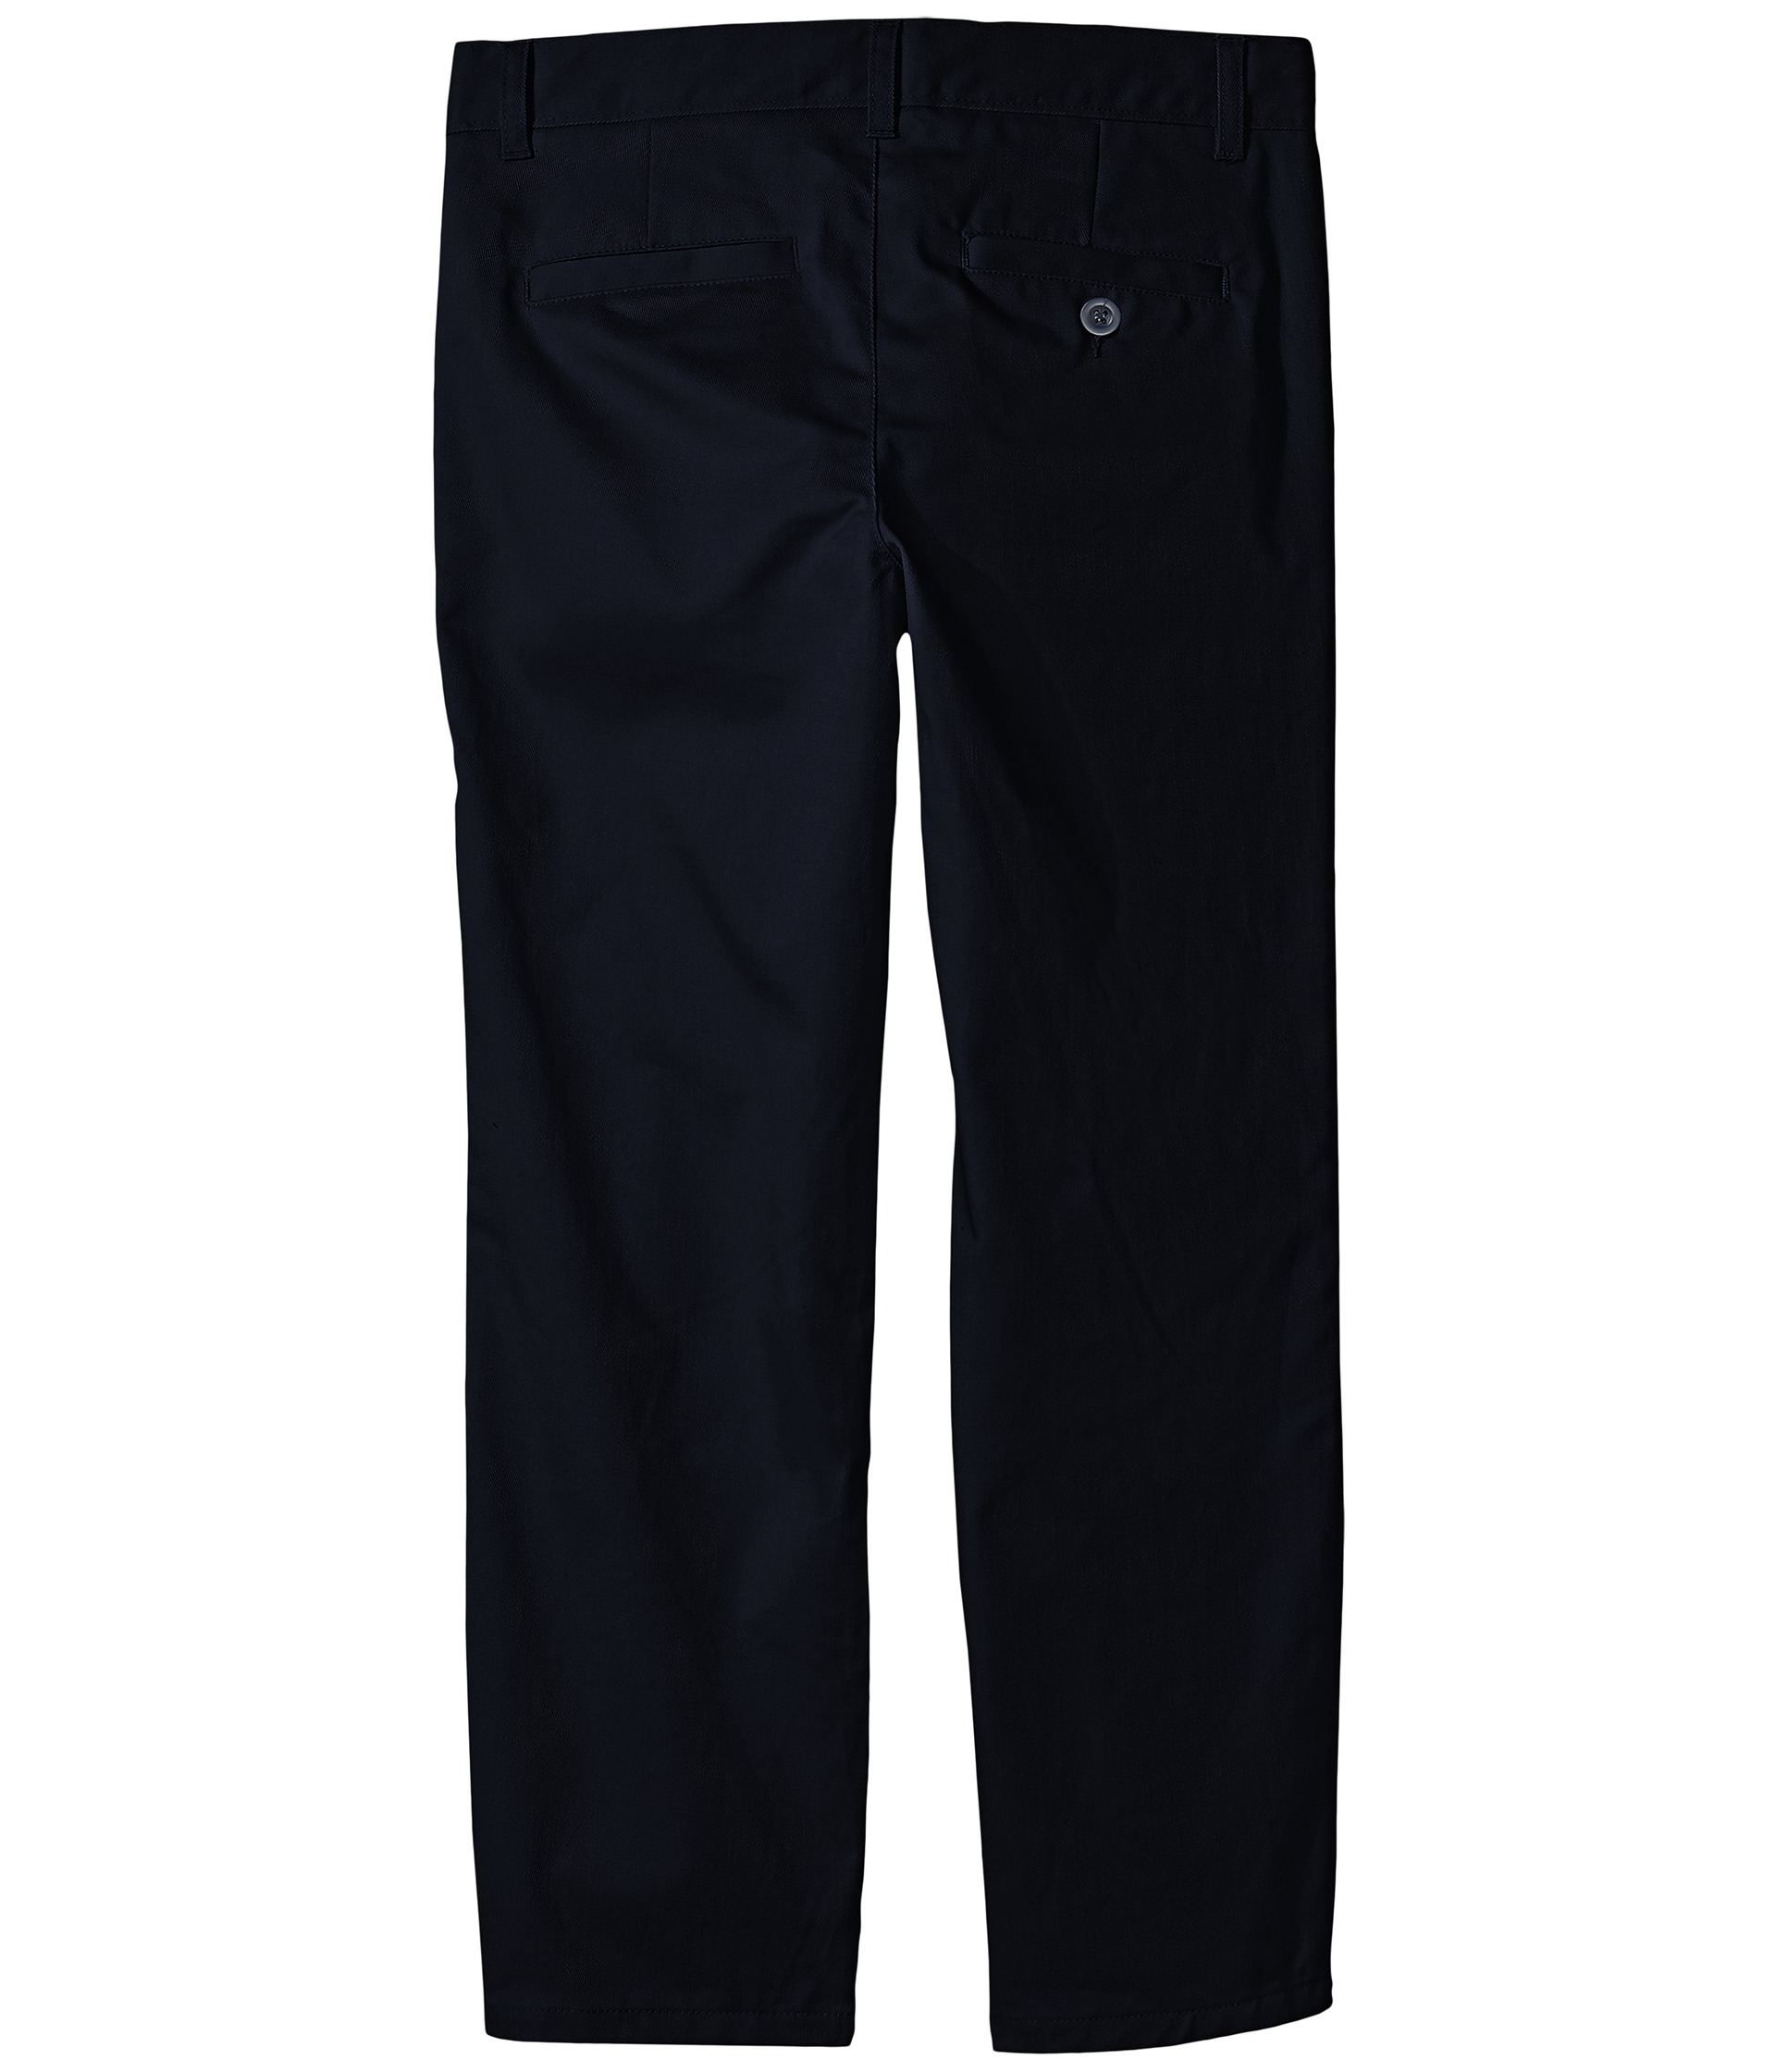 Shop Lands' End for quality Boys Husky Pants. Find Boys husky corduroy pants, chinos, cargo pants, sweat pants, track pants, pull-on pants and more.